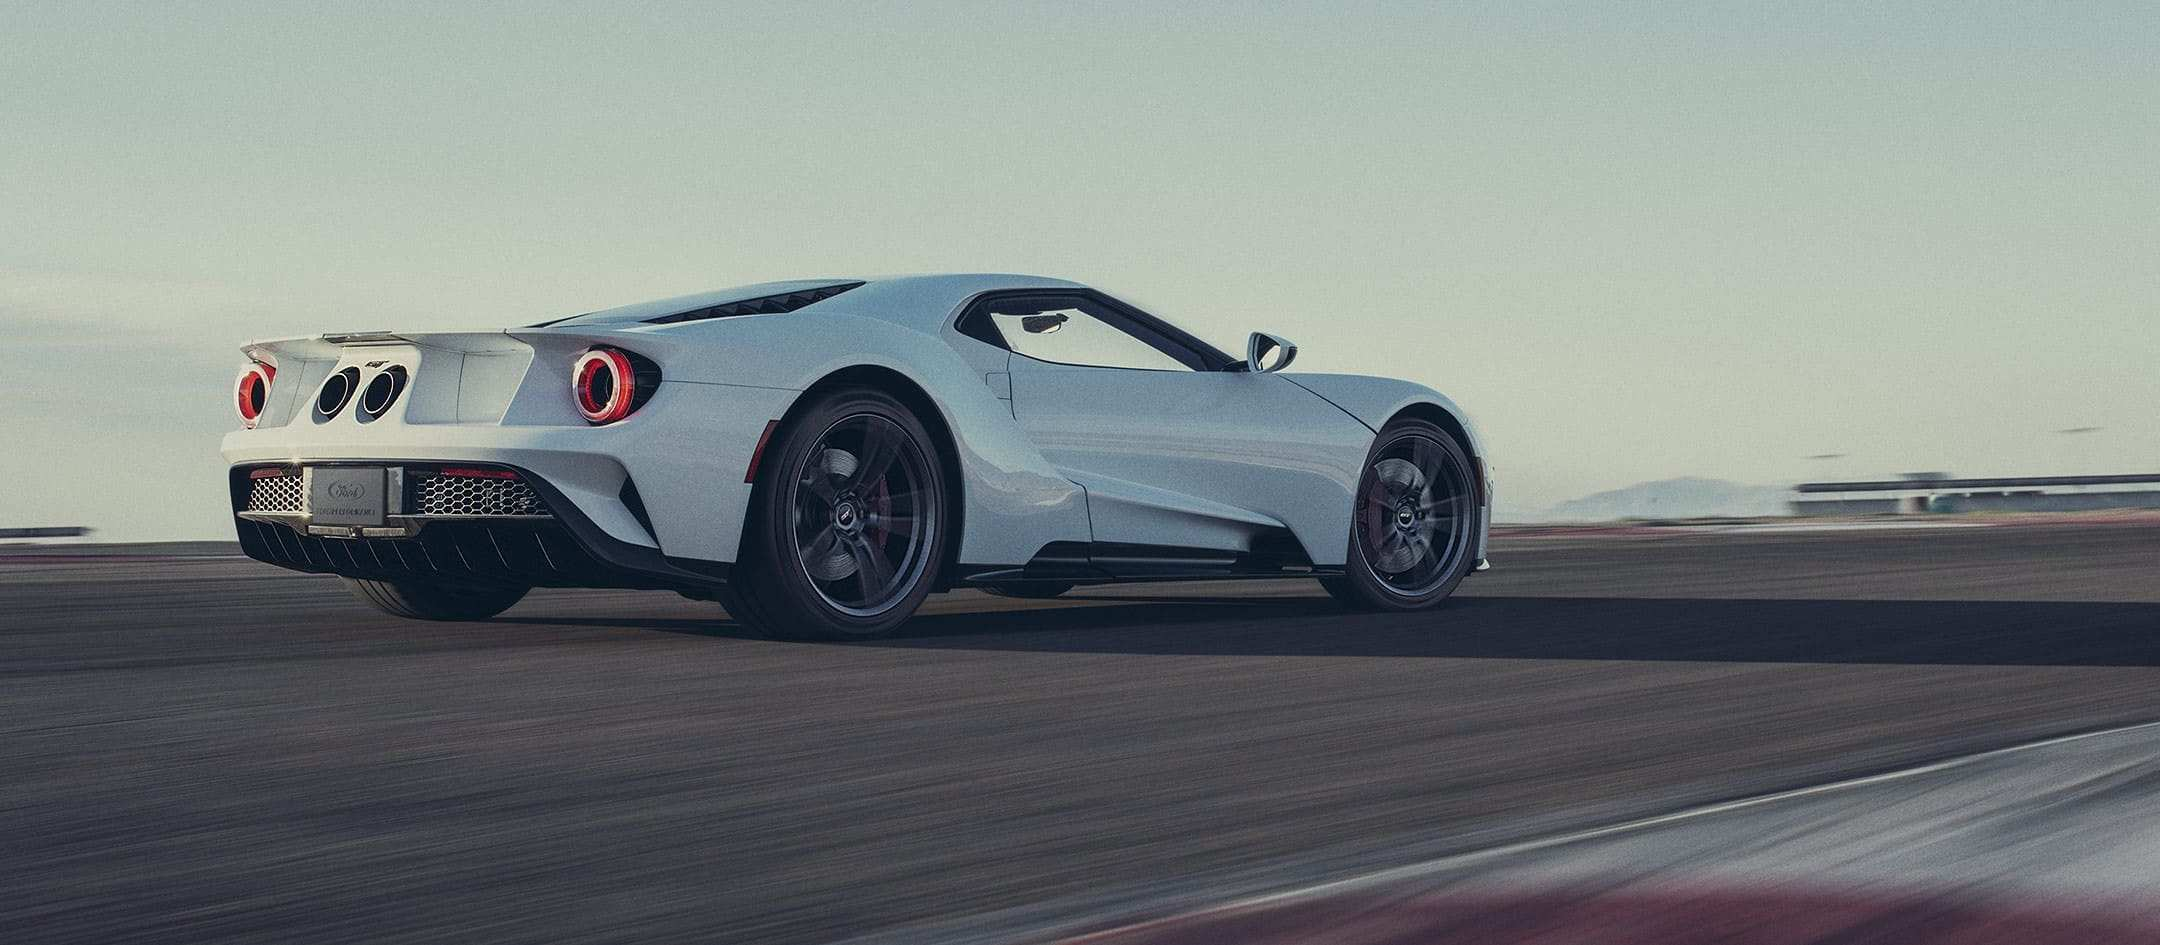 31 Concept of 2019 Ford Gt Specs Specs with 2019 Ford Gt Specs